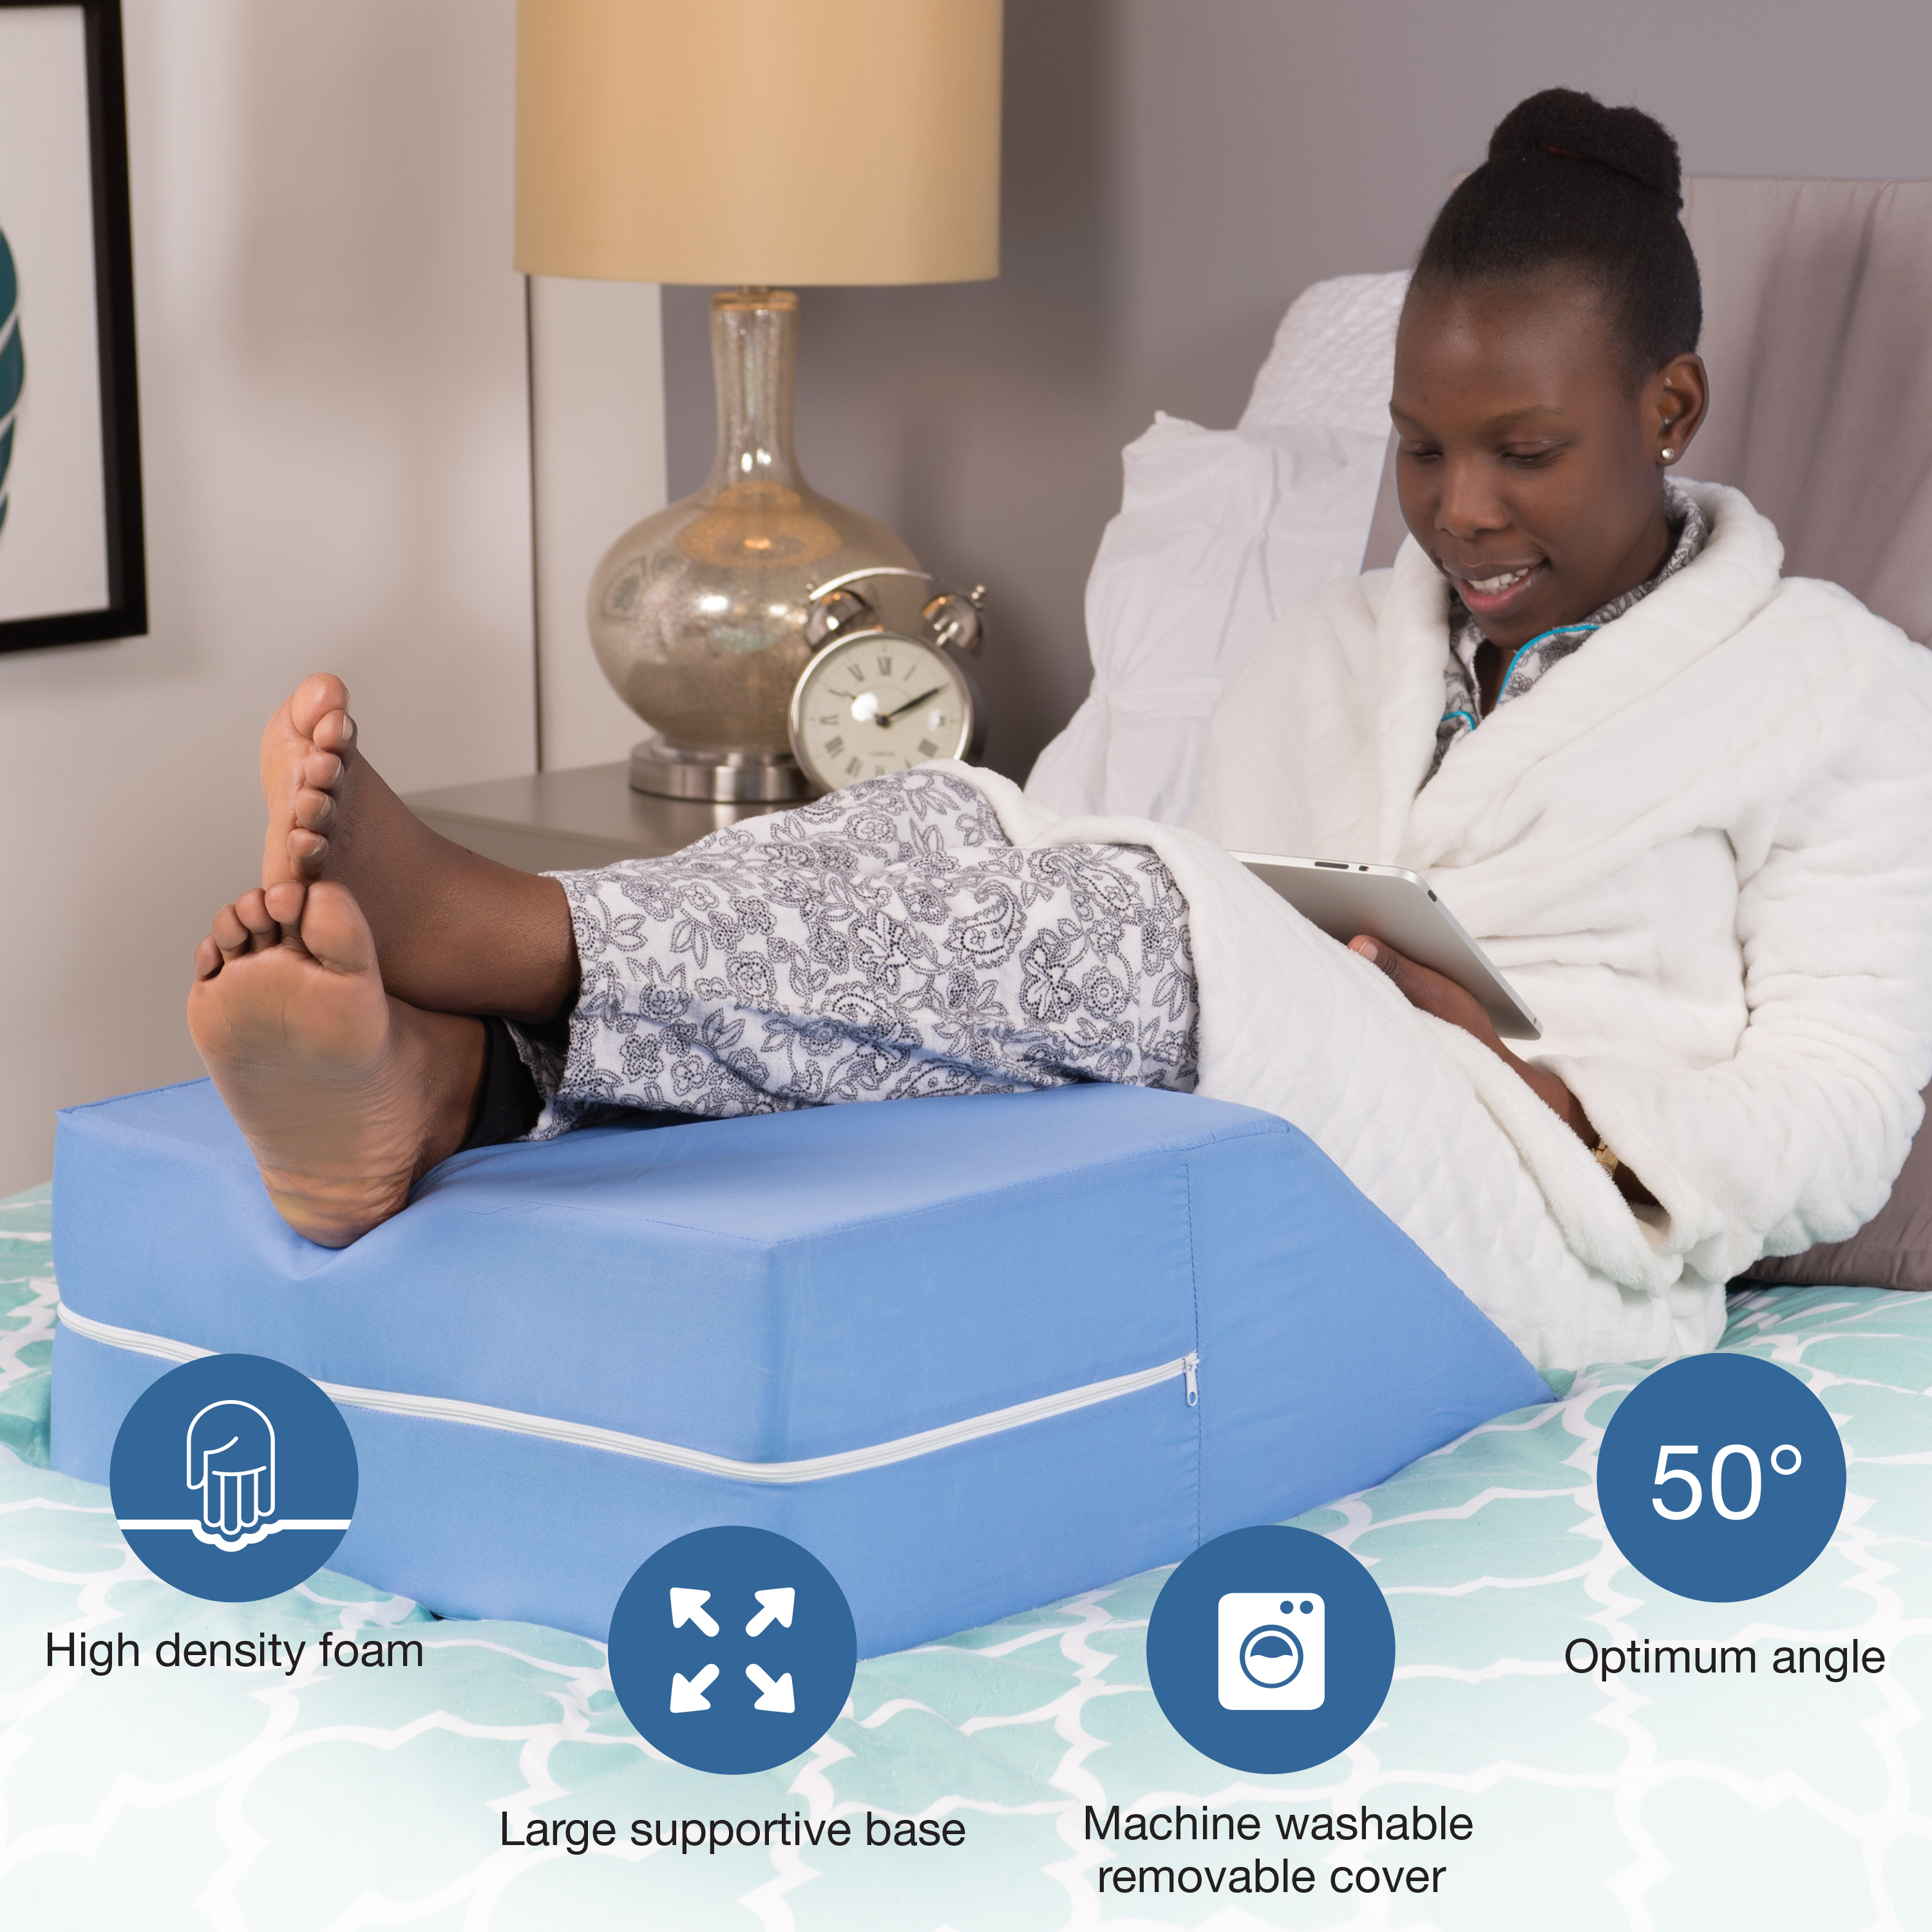 dmi ortho bed wedge elevated leg pillow supportive foam wedge pillow for elevating legs improved circulation reducing back pain post surgery and